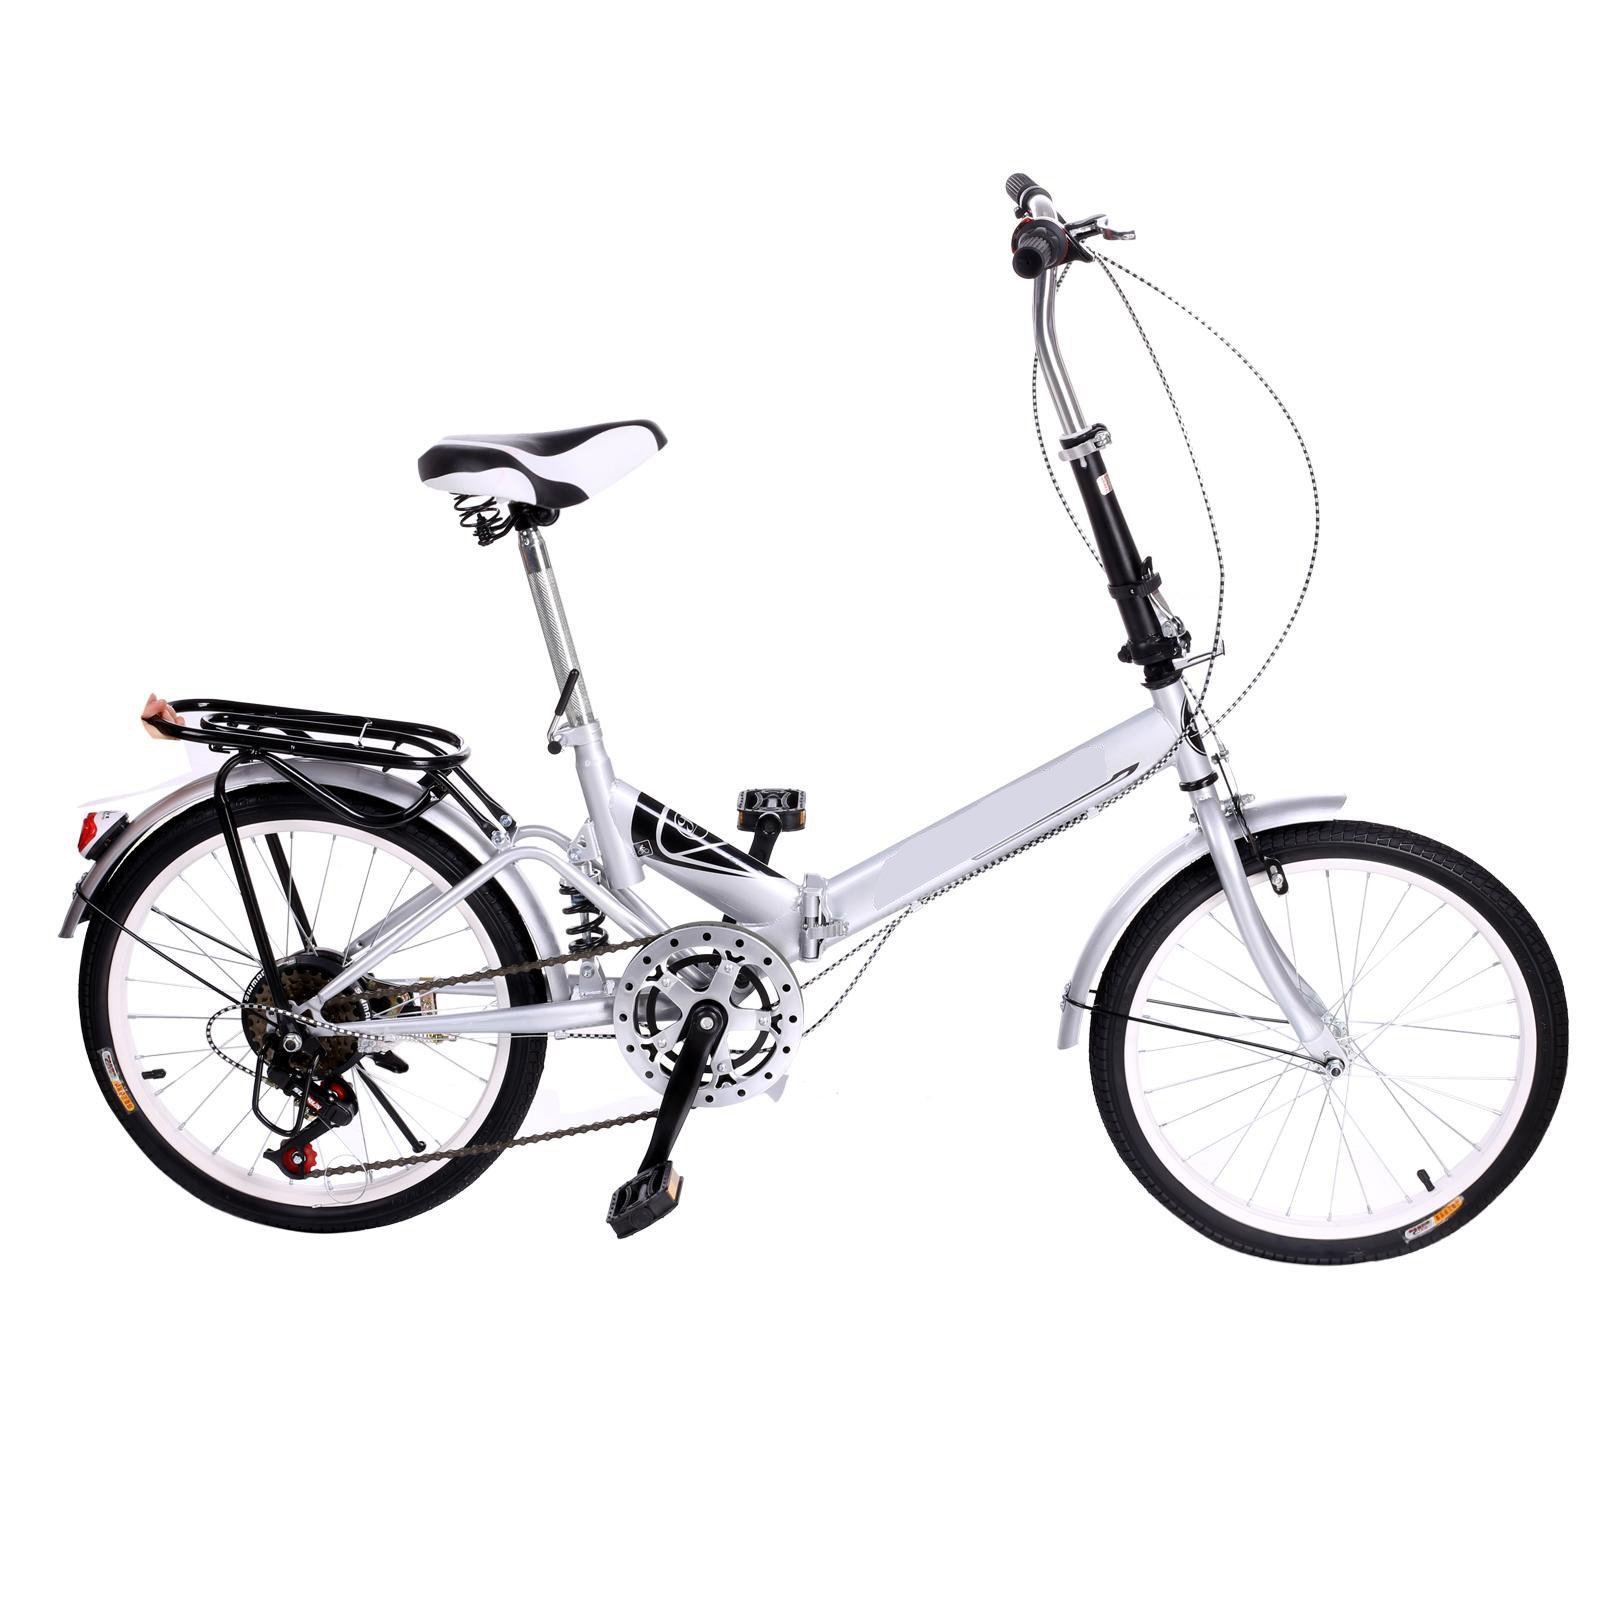 Utheing 20inch Wheel Folding Bike 6 Speed Mountain Bicycle Cycling Steel Frame Double Disk, Silver by Utheing (Image #3)